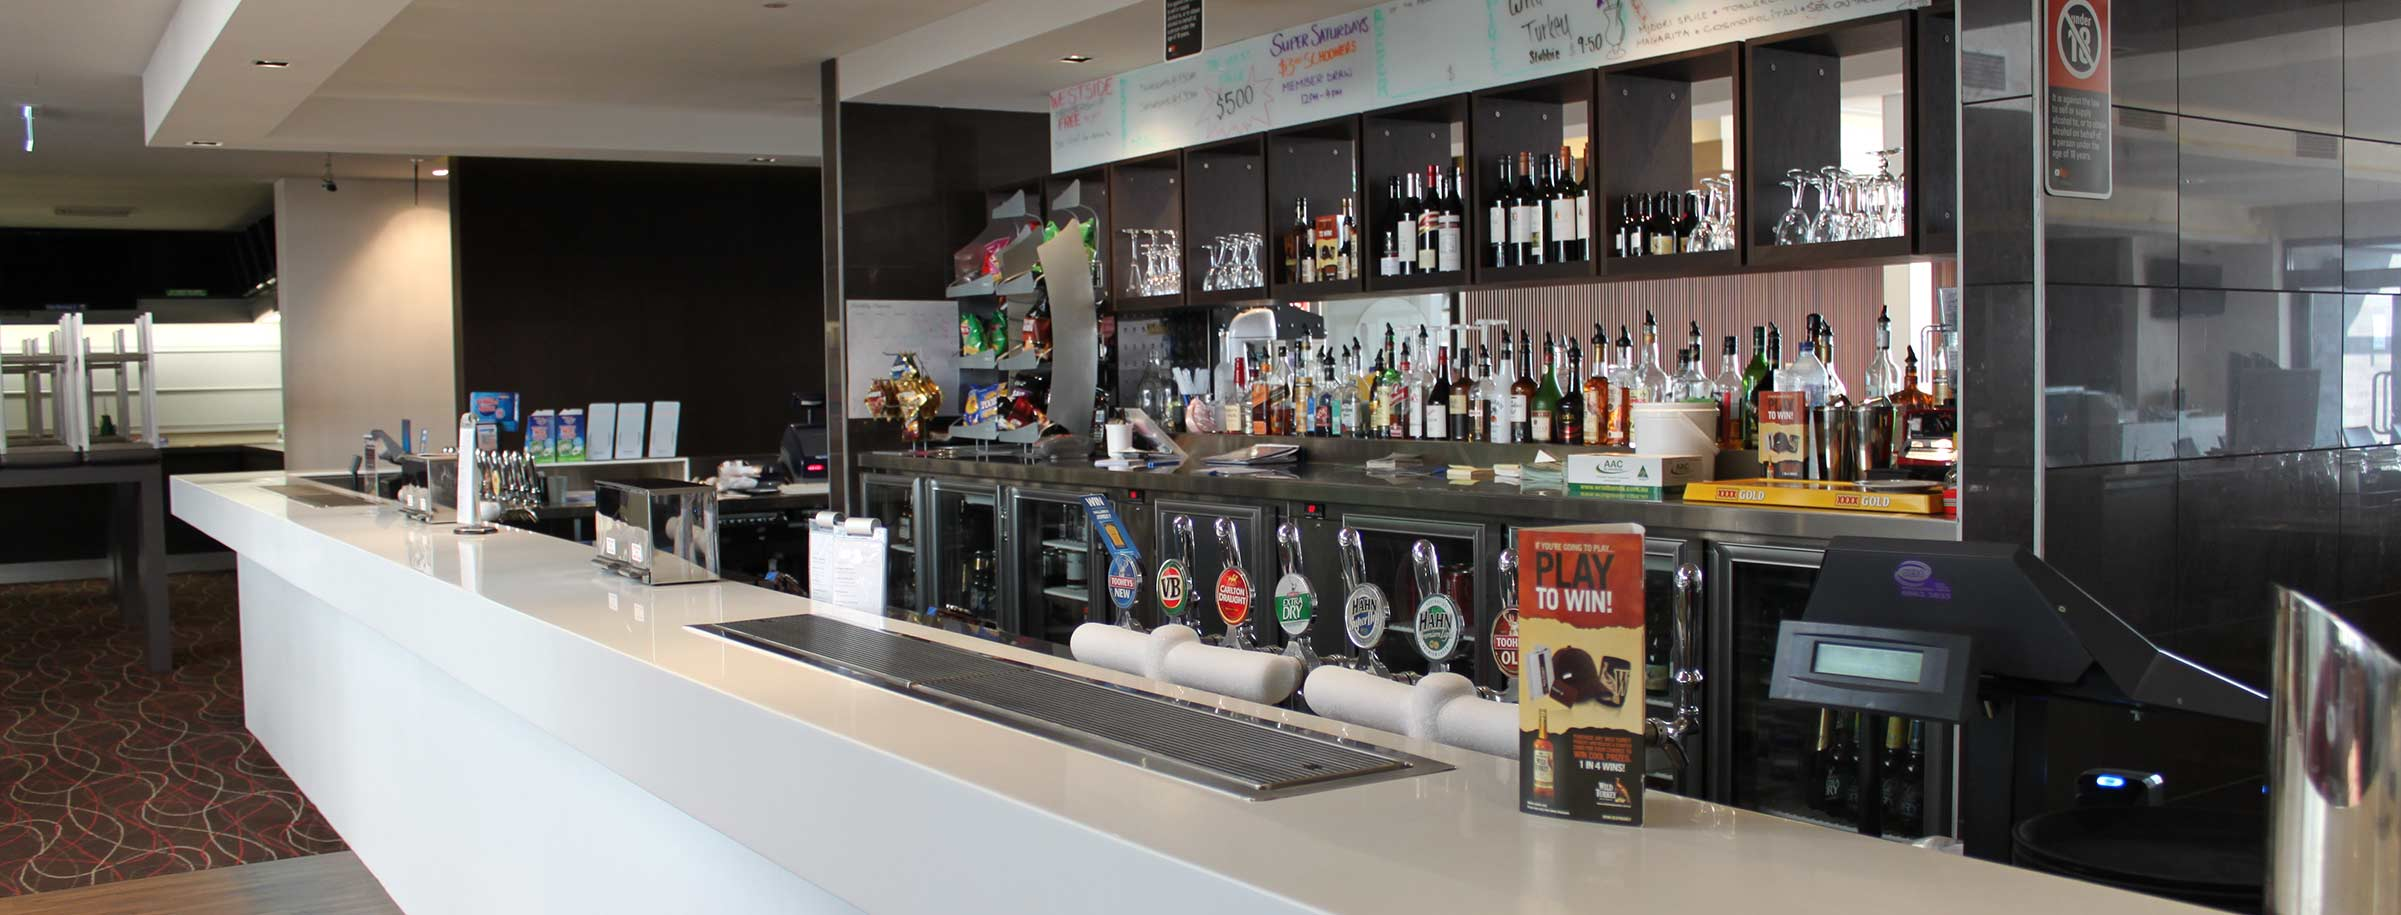 westside hotel bar facilities